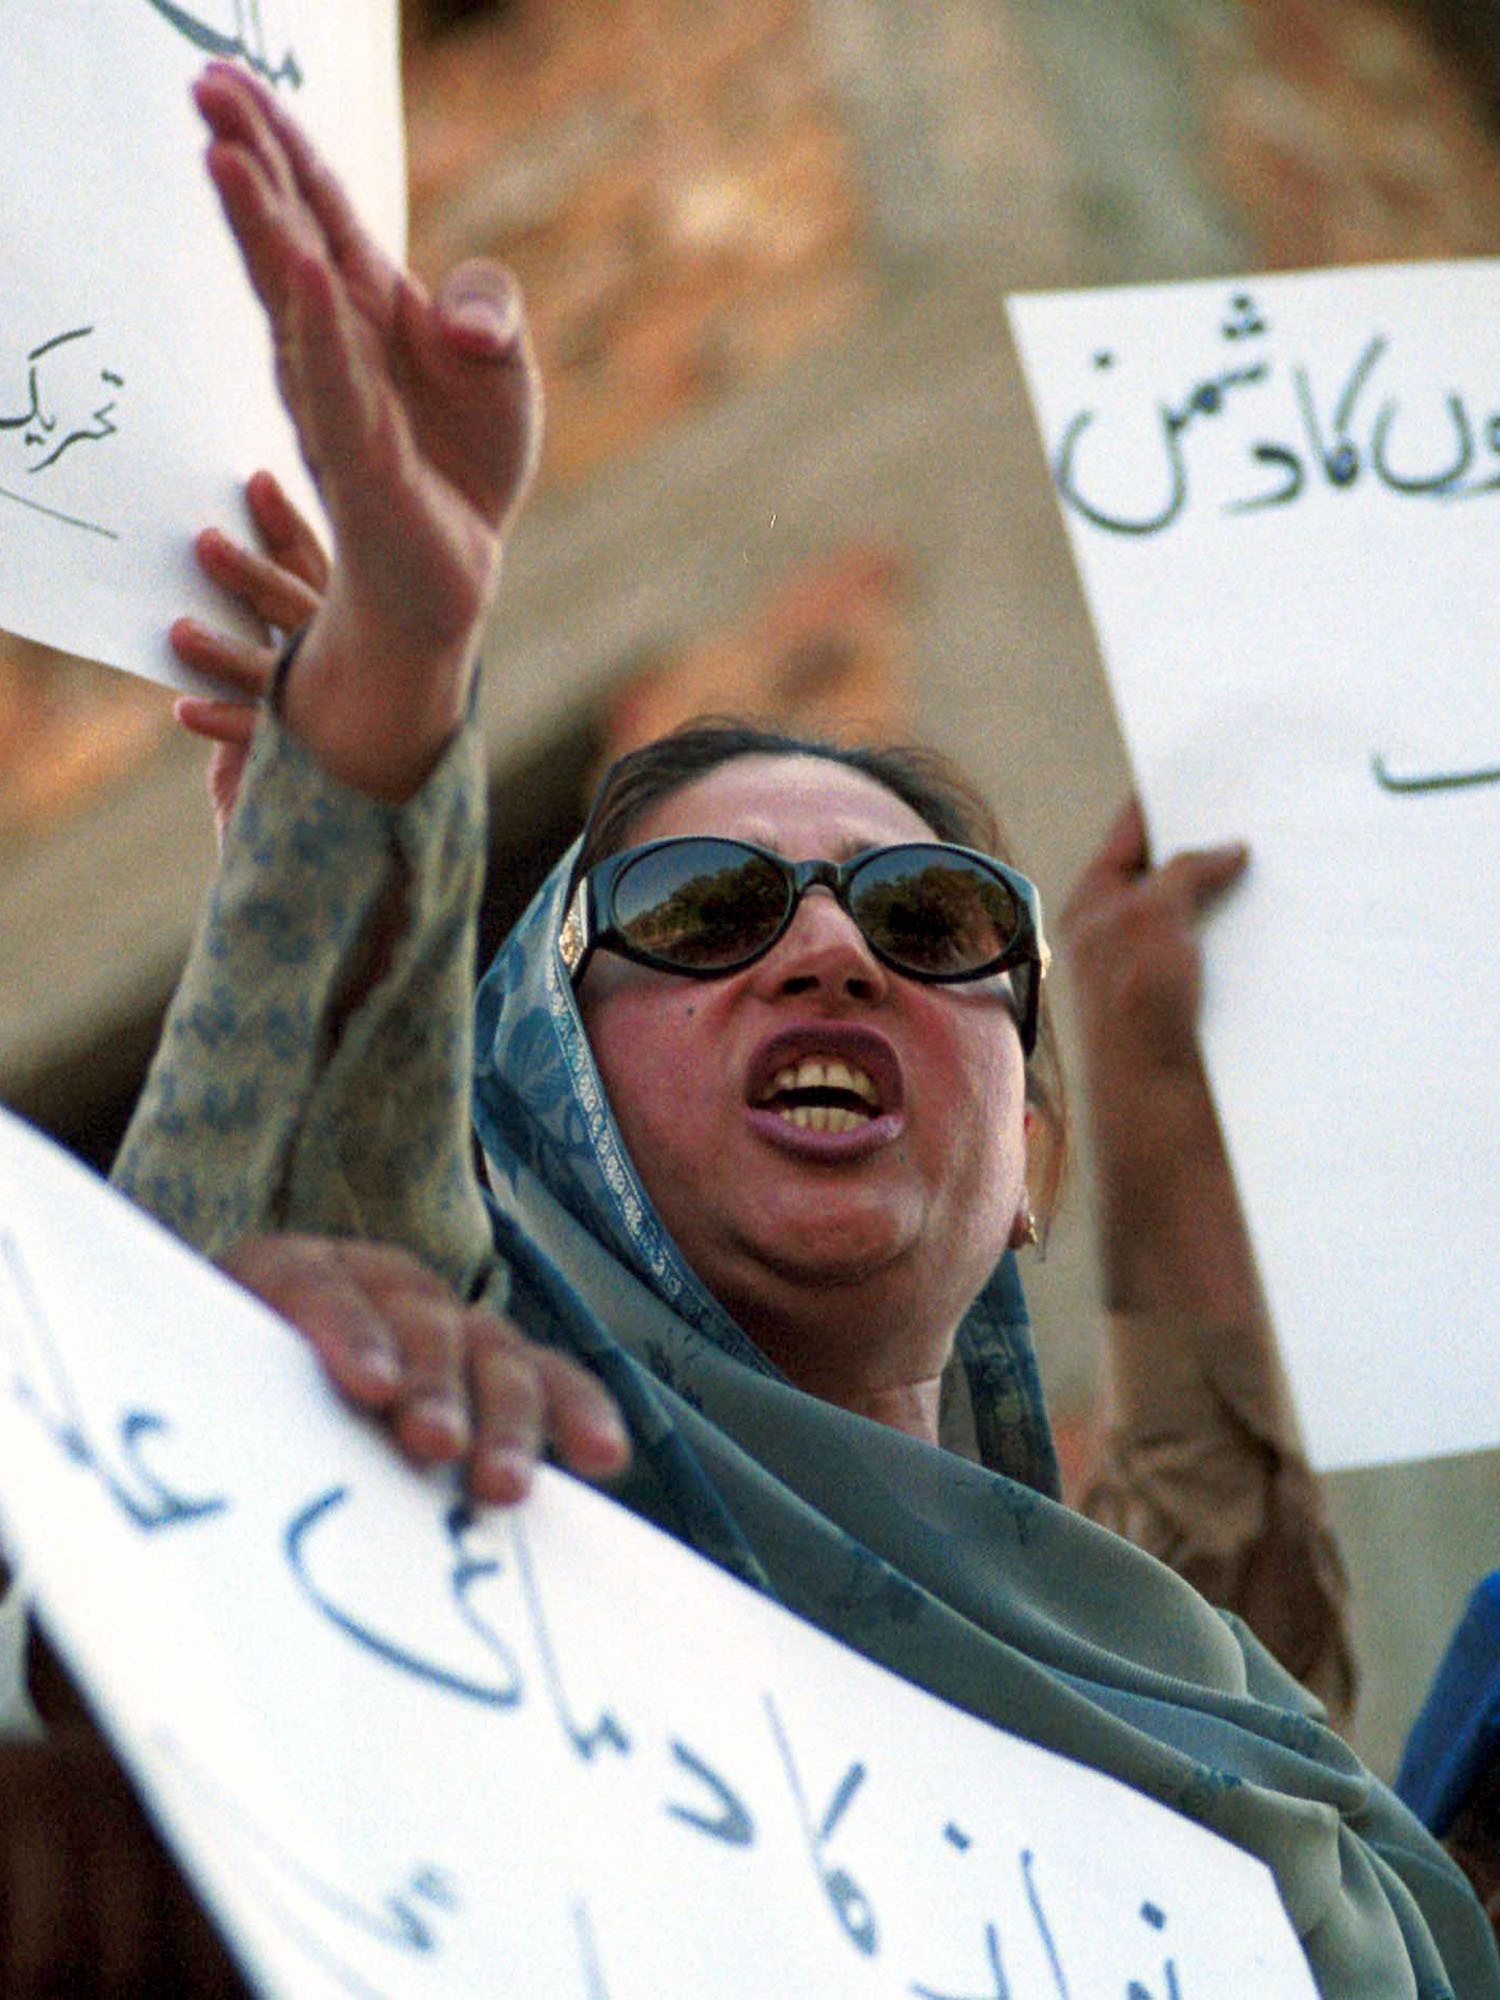 Mussarat Shaheen, Pakistan's dancer-actress turned politician, addresses her supporters in Islamabad in 2000. Better known for provocative moves than her piety, she recently rattled off a series of verses from the Quran when quizzed by an official.